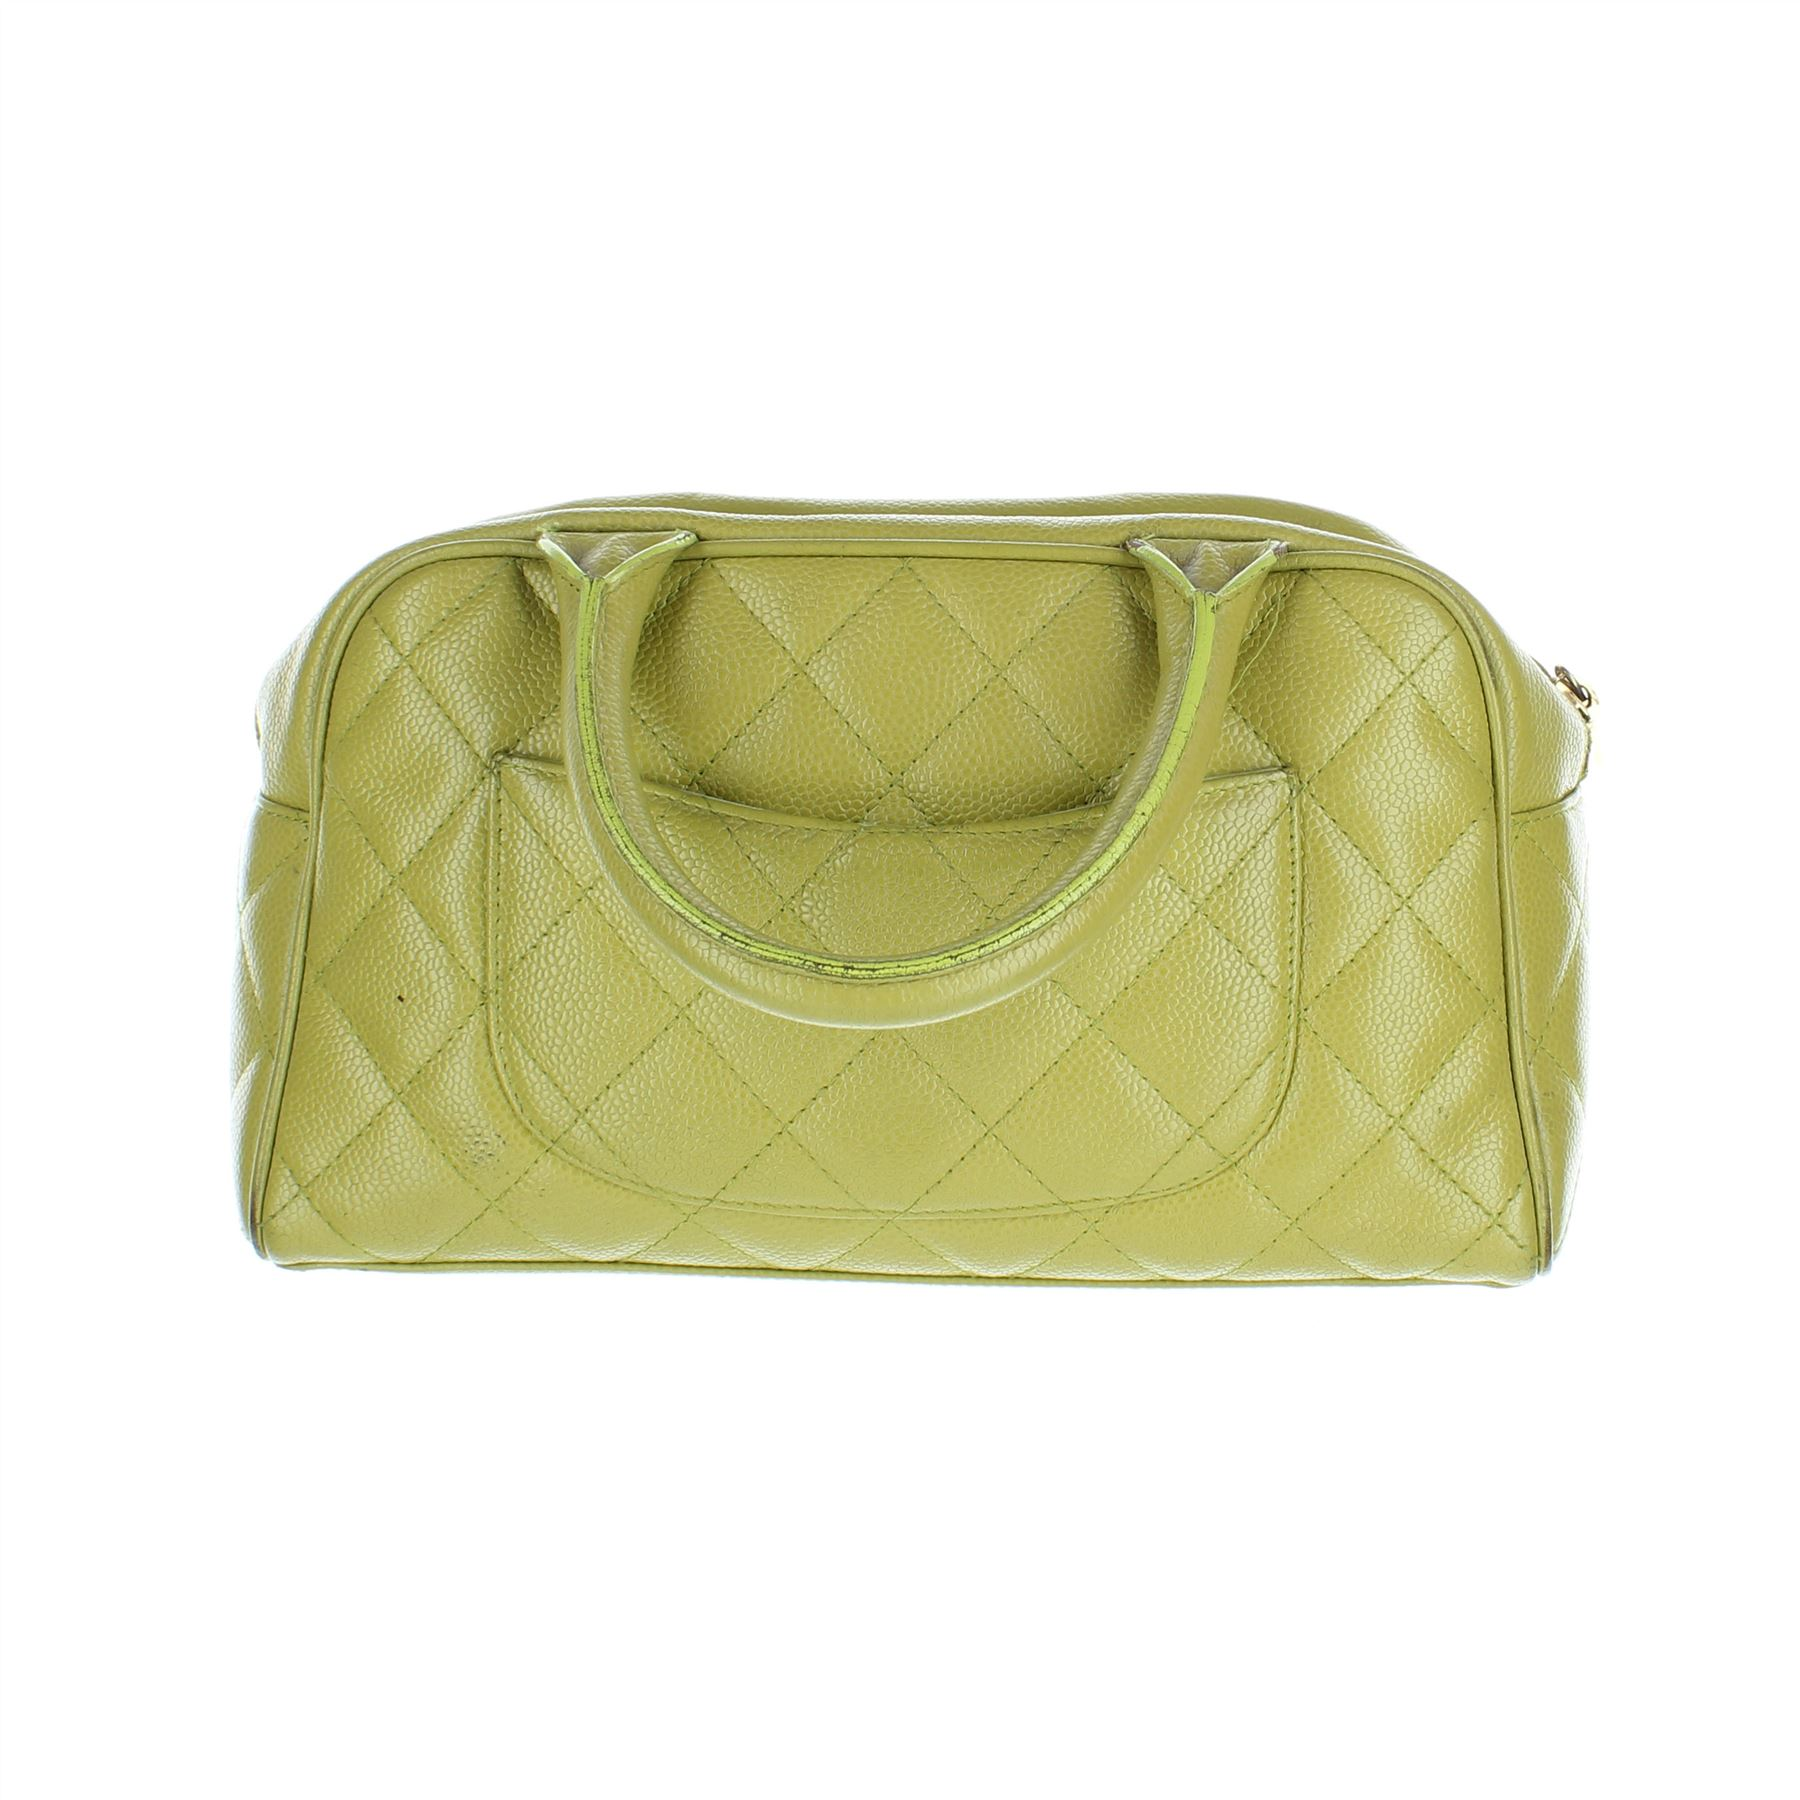 813794109d7489 Details about CHANEL Caviar Bowler Green Leather Handbag, 6.25